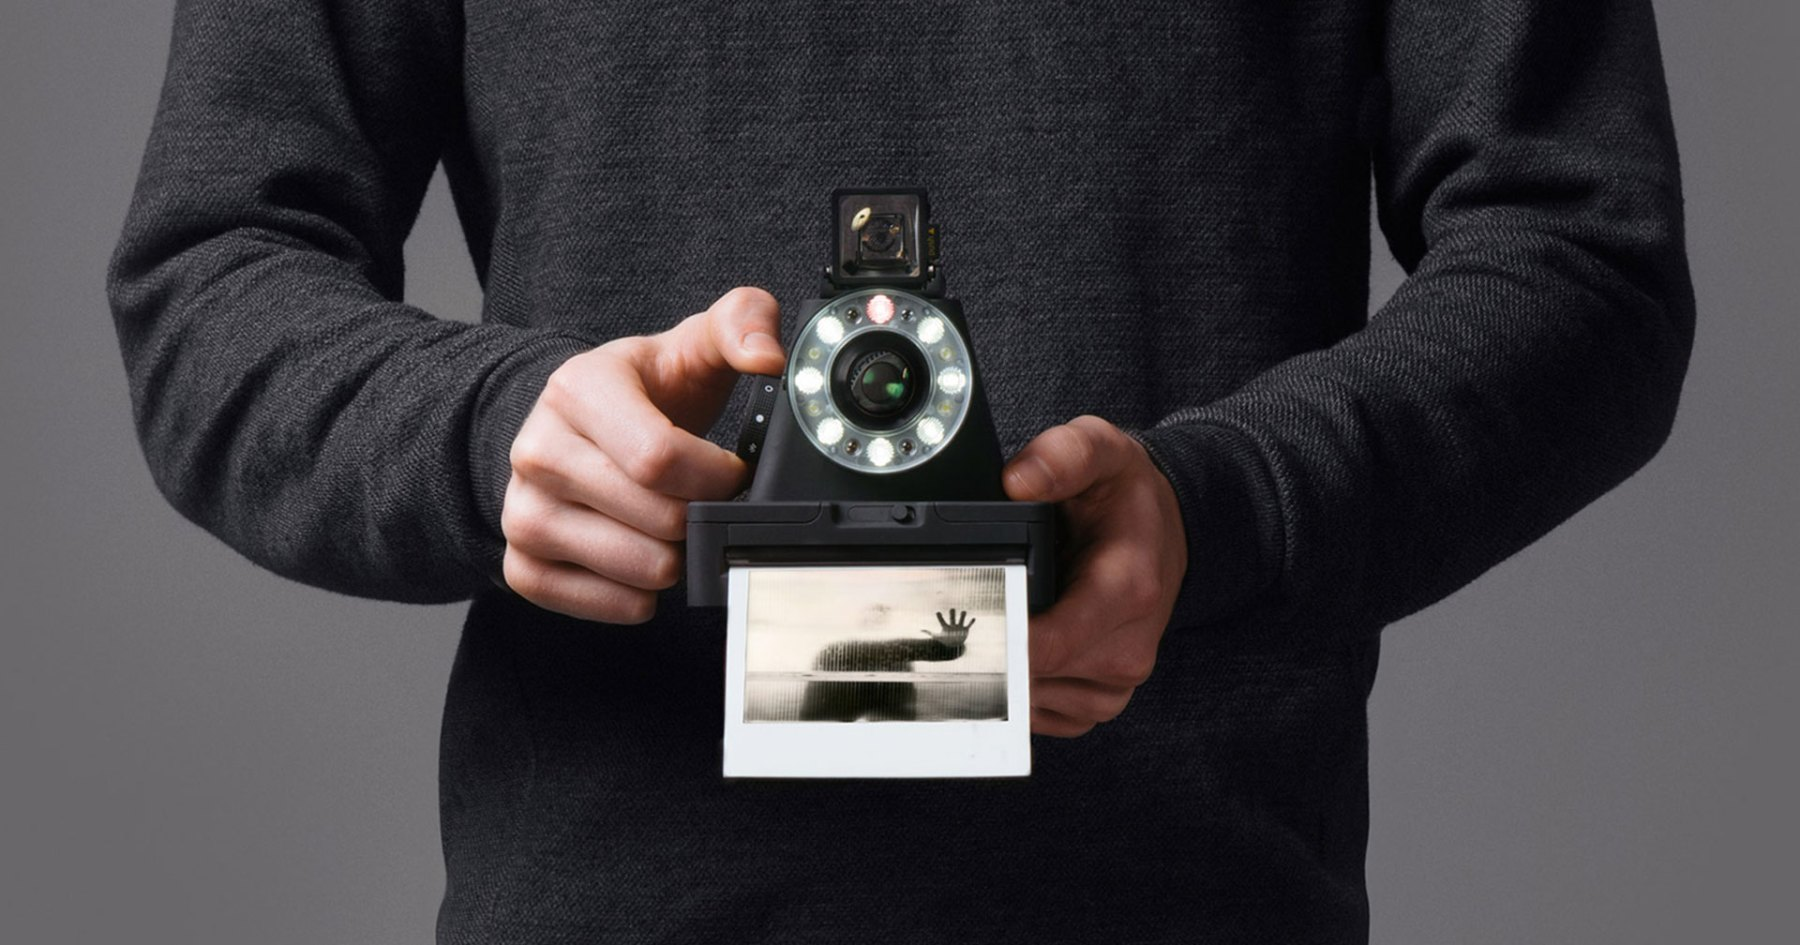 The Polaroid Is Back, and It's Smarter Than Ever